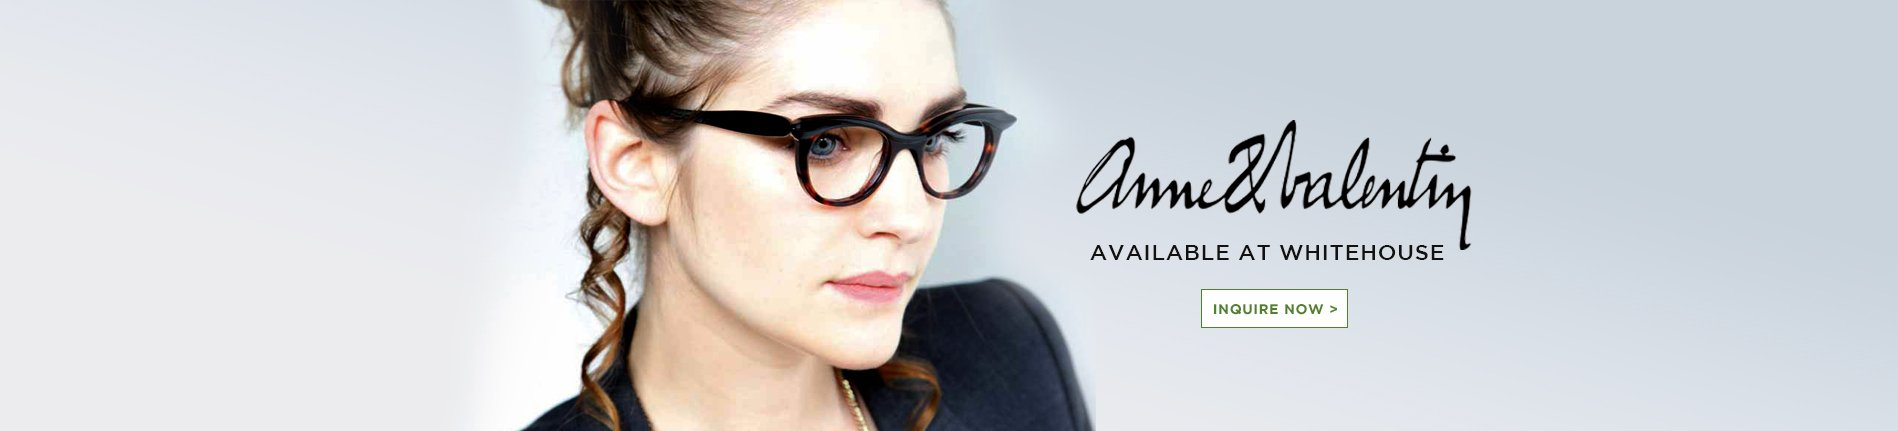 Anne Valentin eyewear available here - optometrist in Syndey